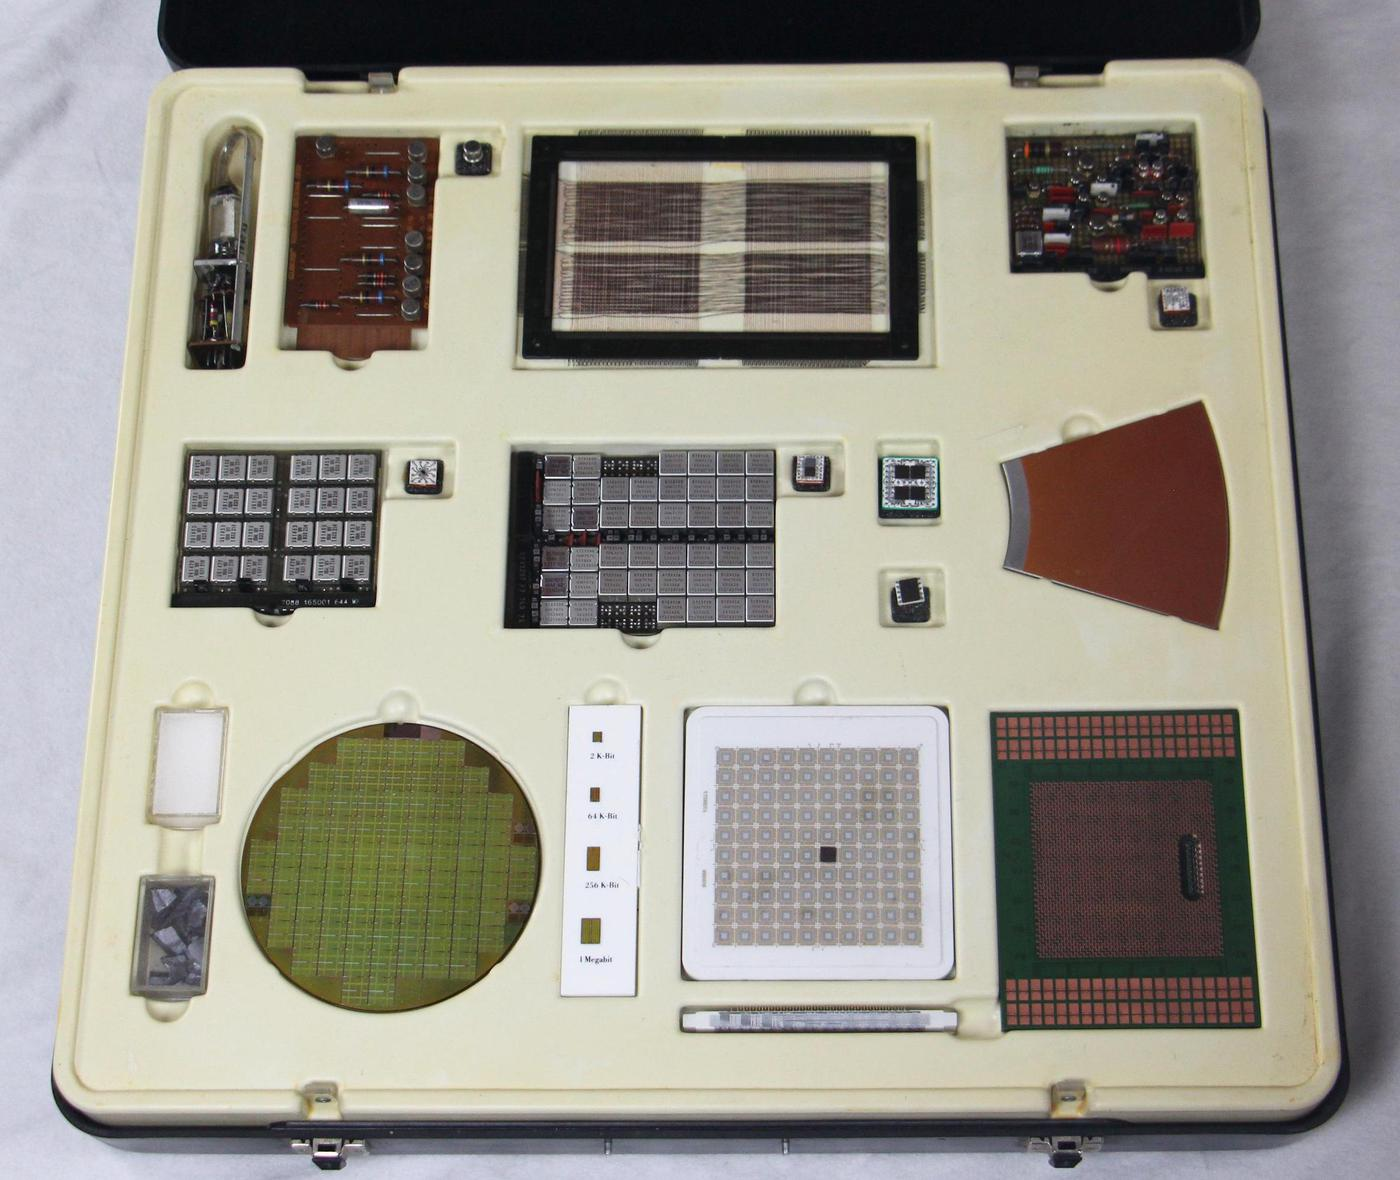 An IBM display box, showing components and board from different generations of computing. Click this (or any other photo) for a larger image.